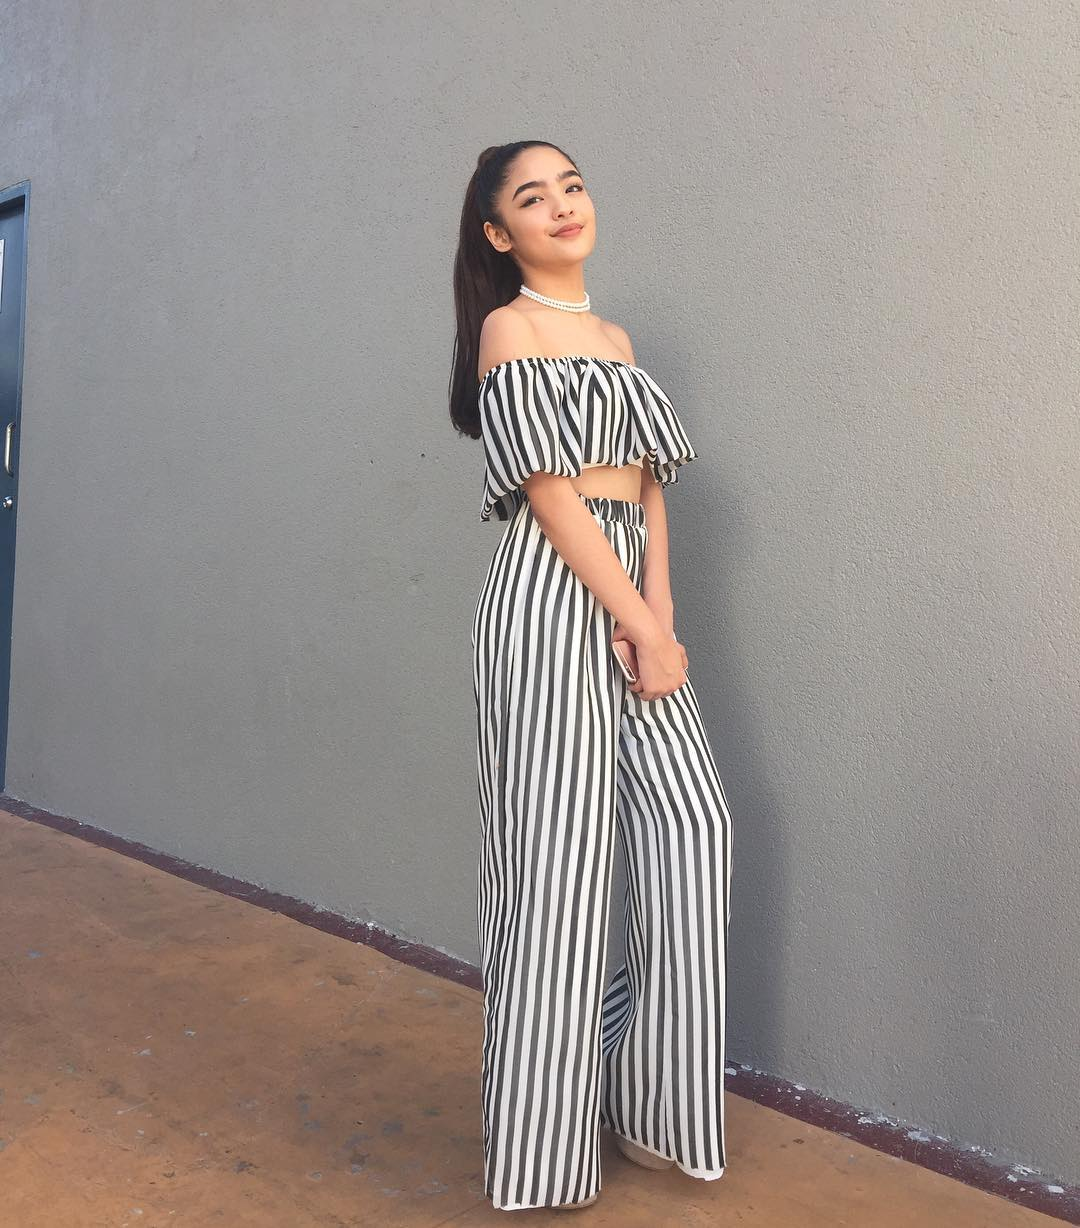 52 beautiful photos of Andrea Brillantes that we are all blessed to see!